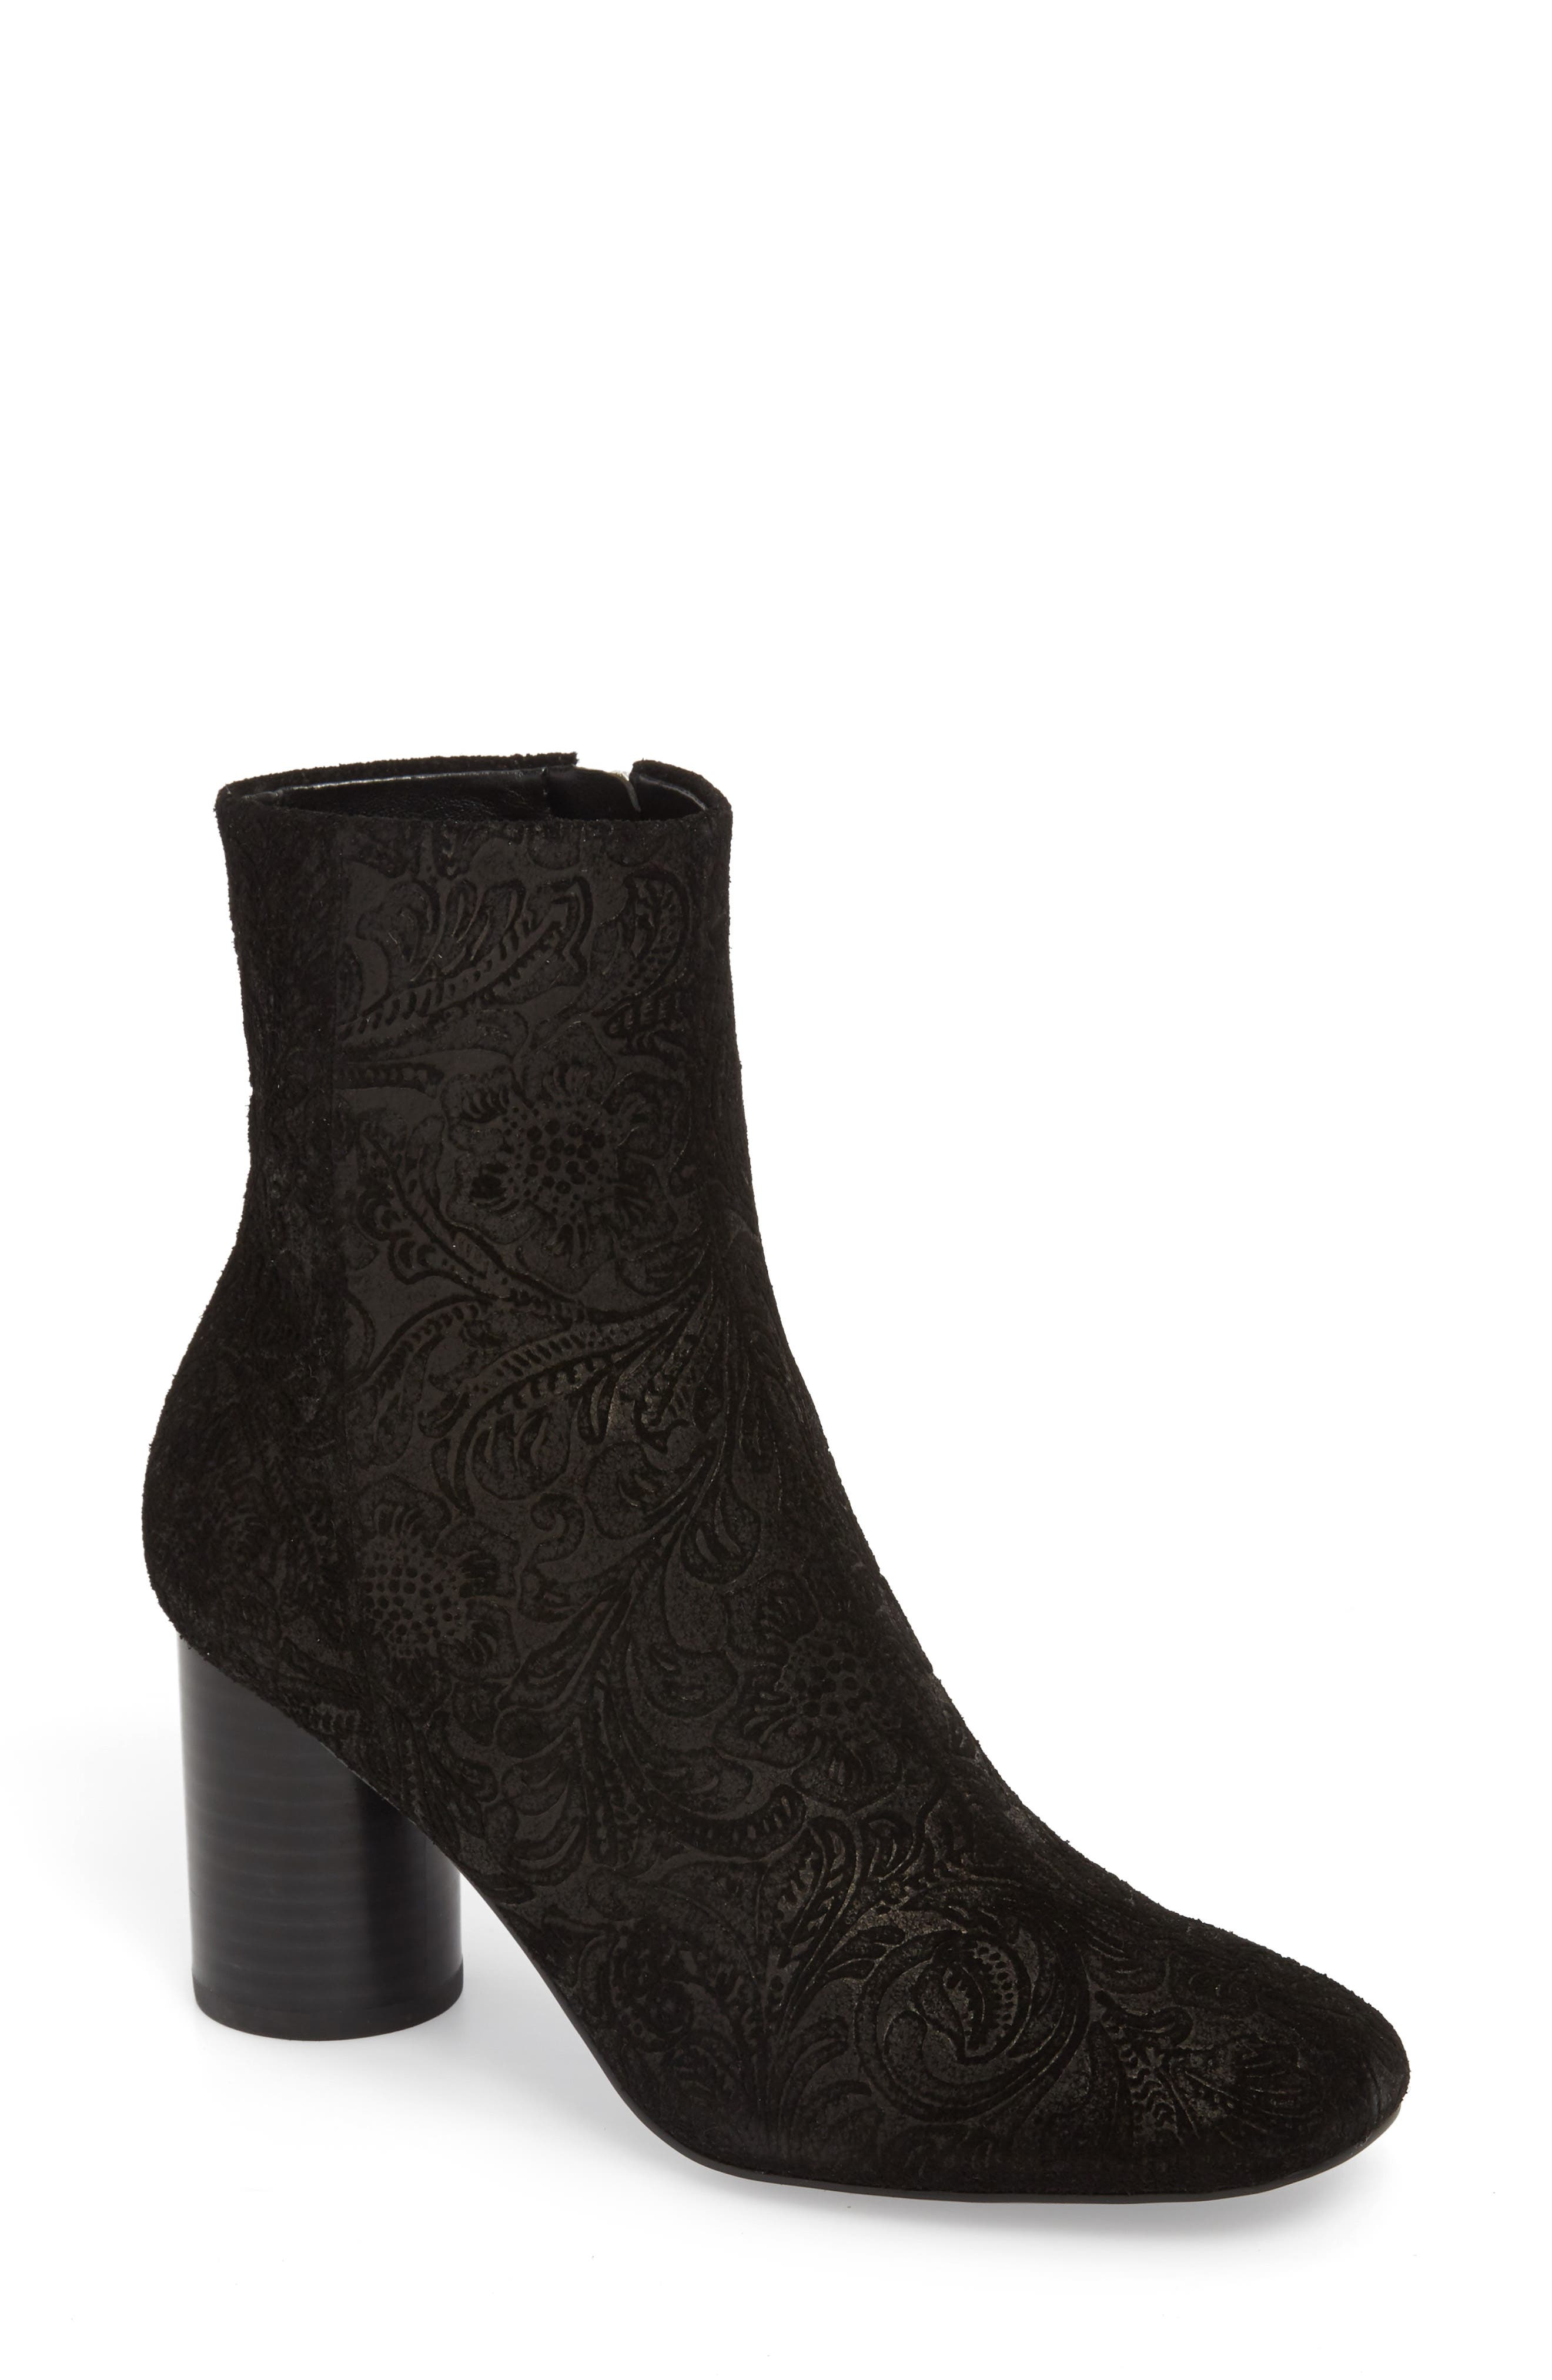 Galella Bootie,                             Main thumbnail 1, color,                             BLACK STAMPED BROCADE LEATHER